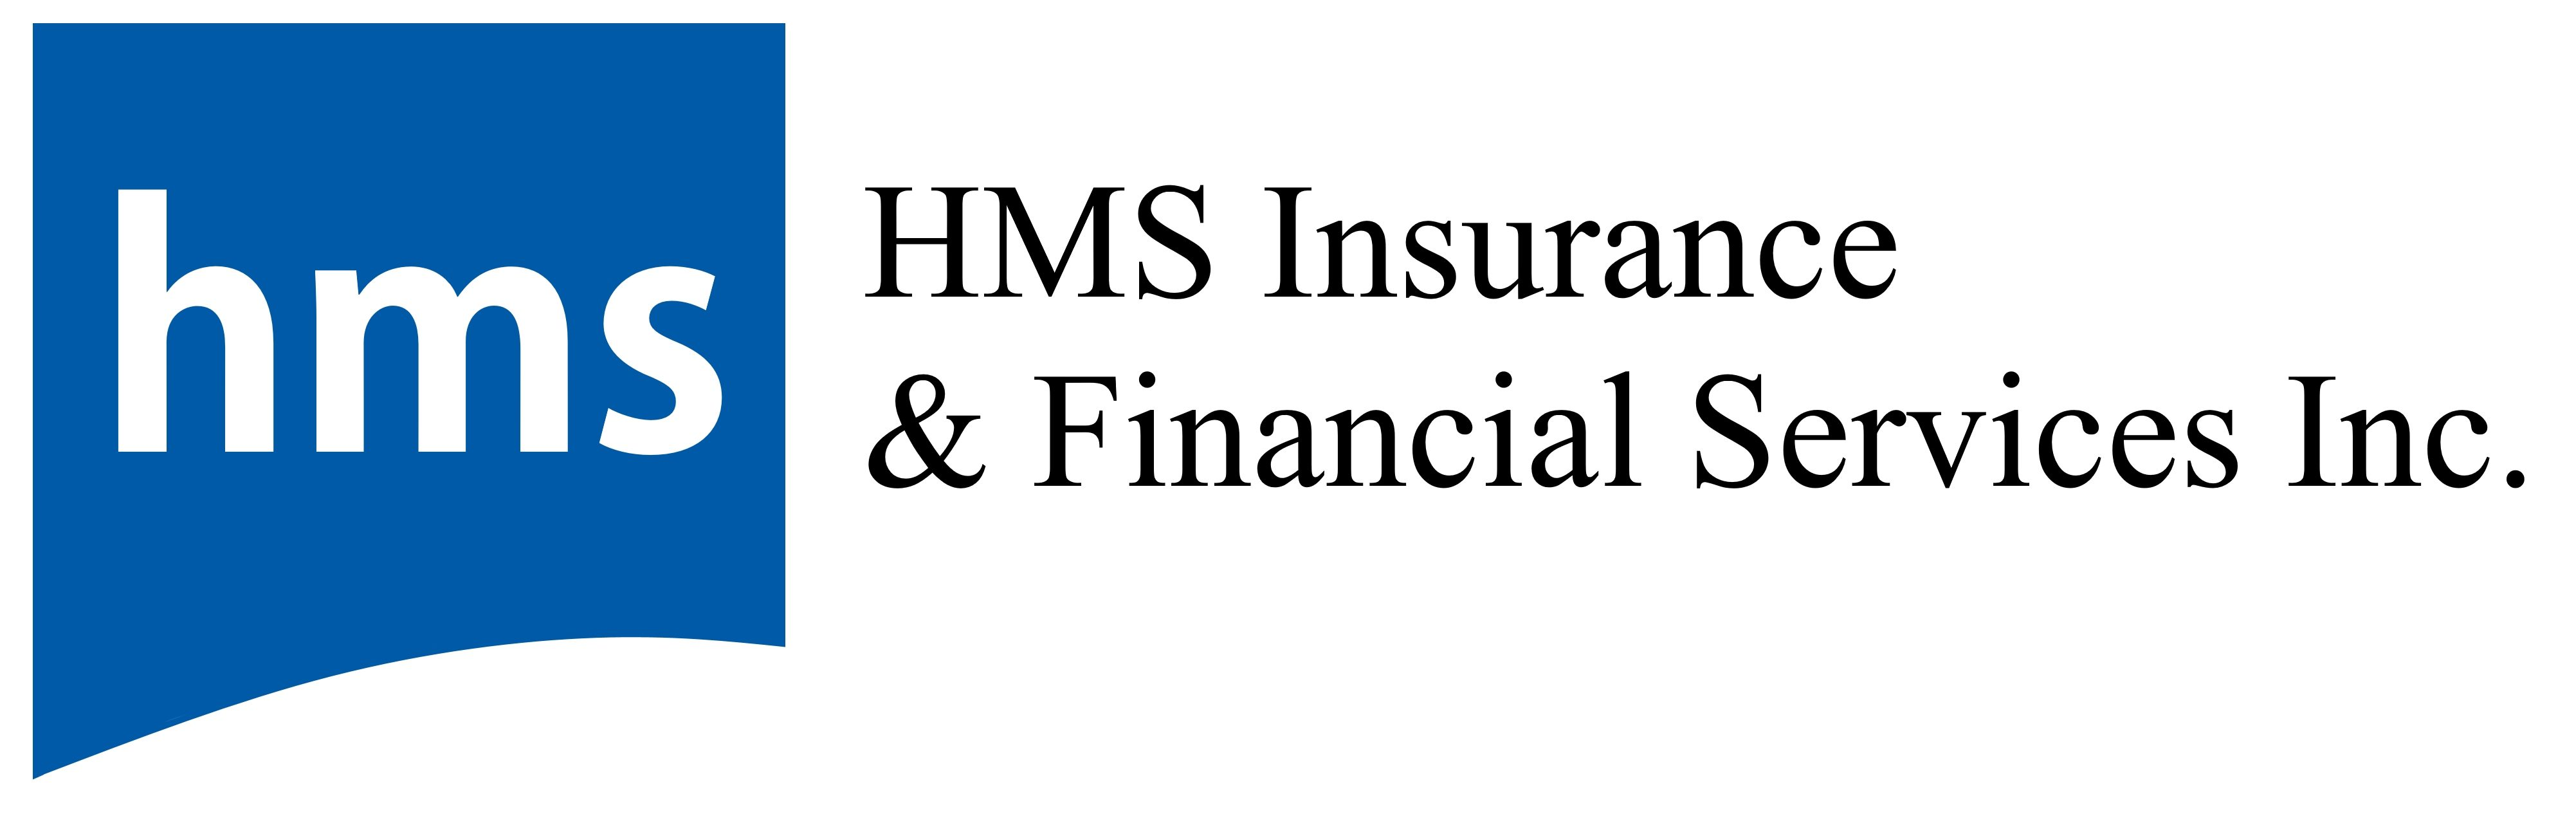 cropped-HMS-Logo-with-text-2.jpg